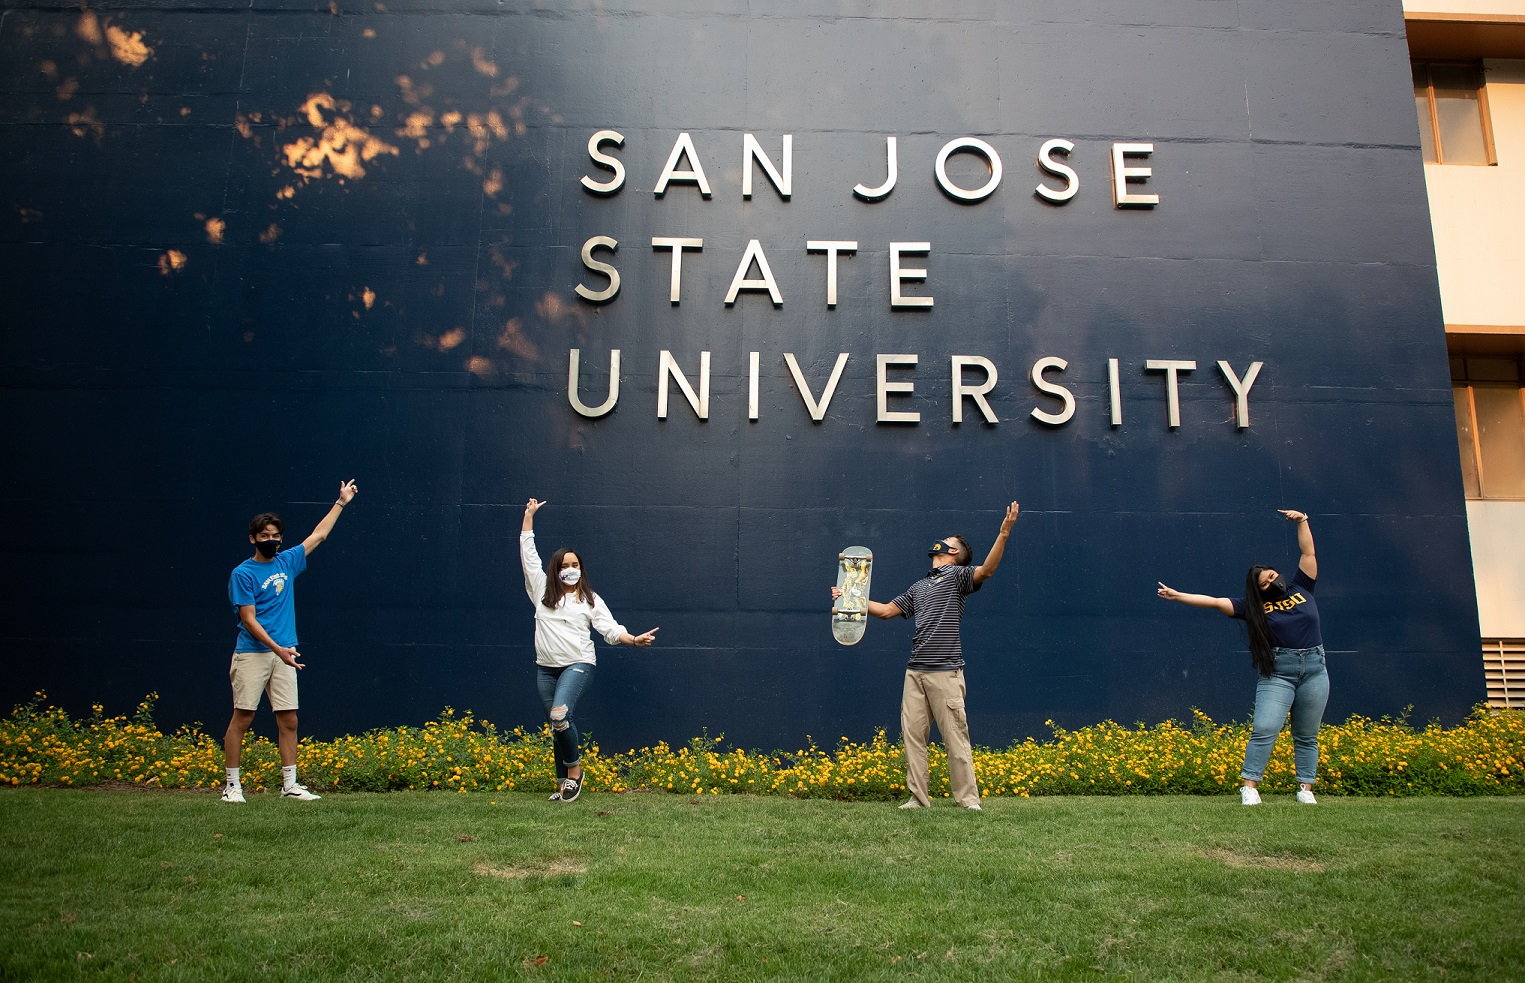 Students in front of San Jose State University wal